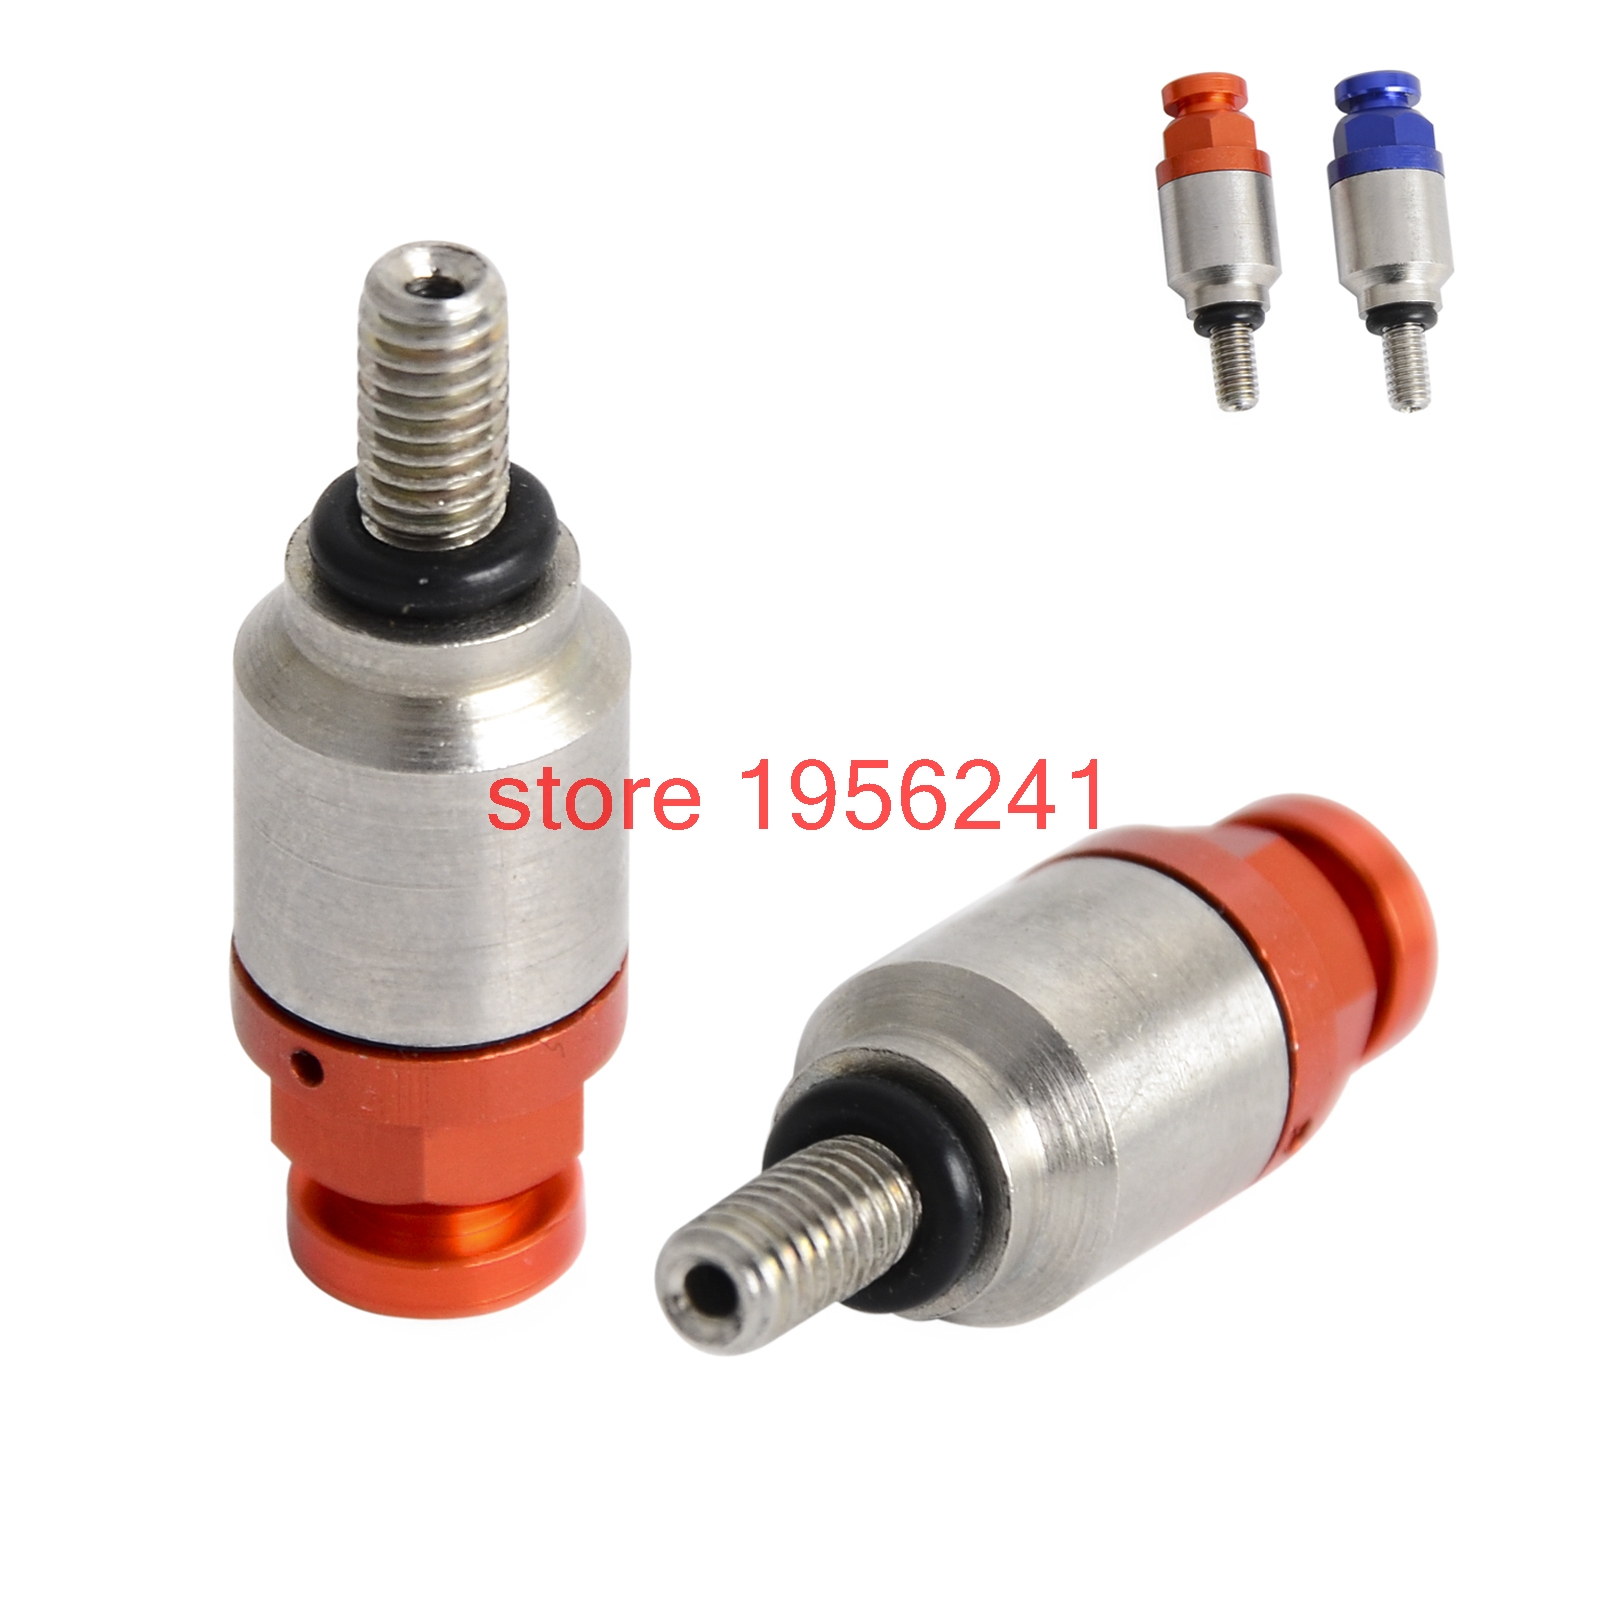 NICECNC M4x0.7 Fork Air Bleeder Valves For KTM EXC SX SXF XC XCW MXC EXCF SMR 50 65 85 105 150 200 250 350 400 450 500 525 530 motorcycle front fork bleeder air valves